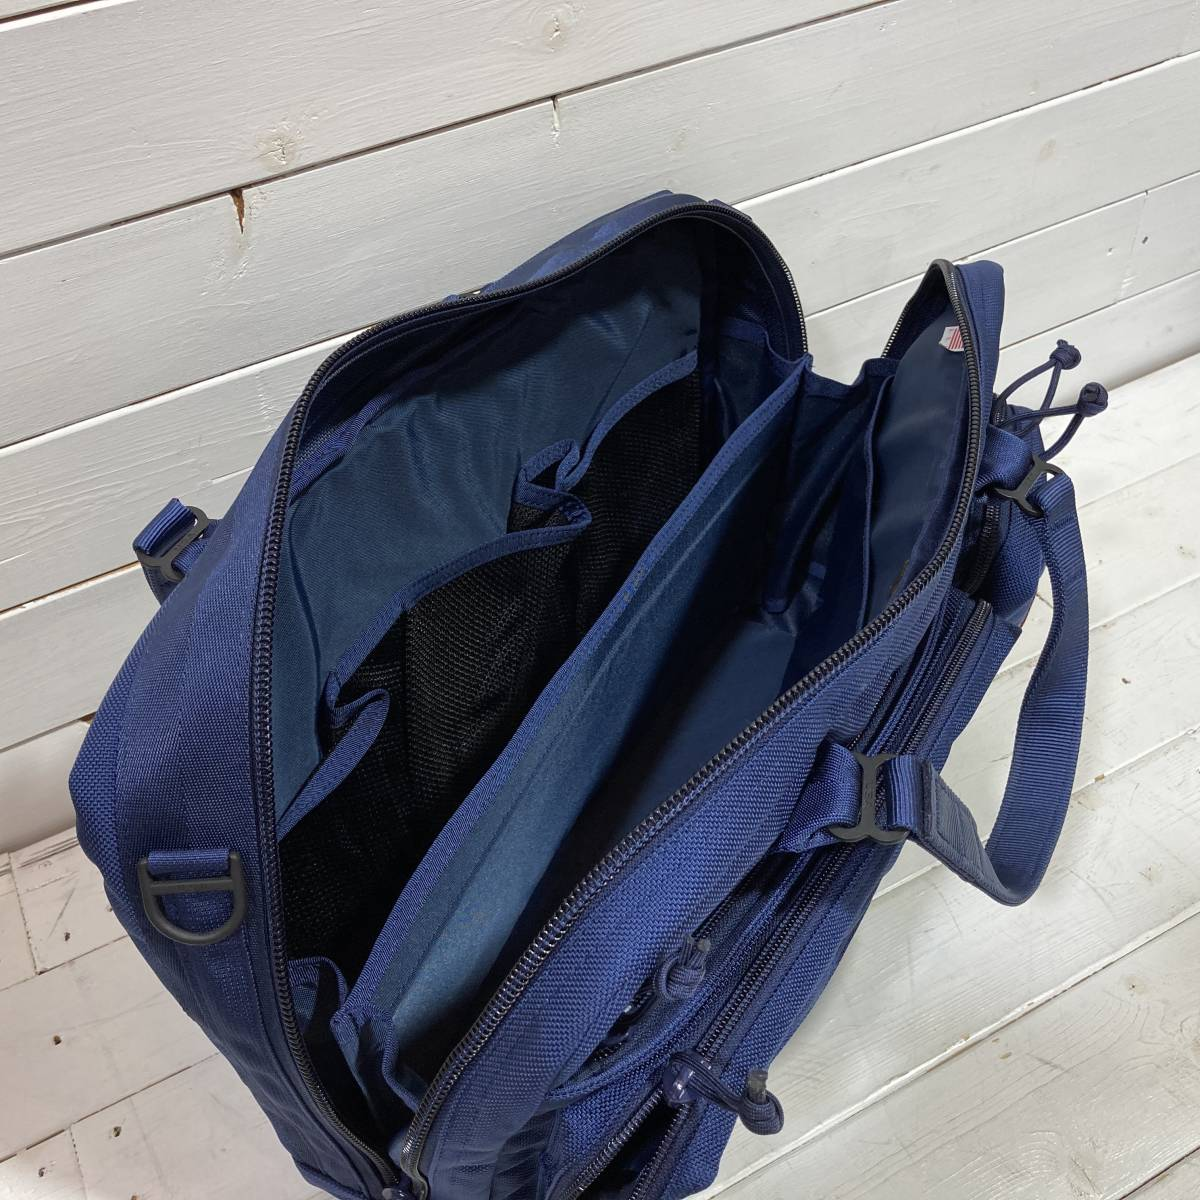 BRIEFING × BEAMS PLUS ブリーフィング × ビームス 別注 AIR FORCE BLUE LINE NEO B4 LINER ショルダーバッグ ブリーフケース A2-2127_画像6